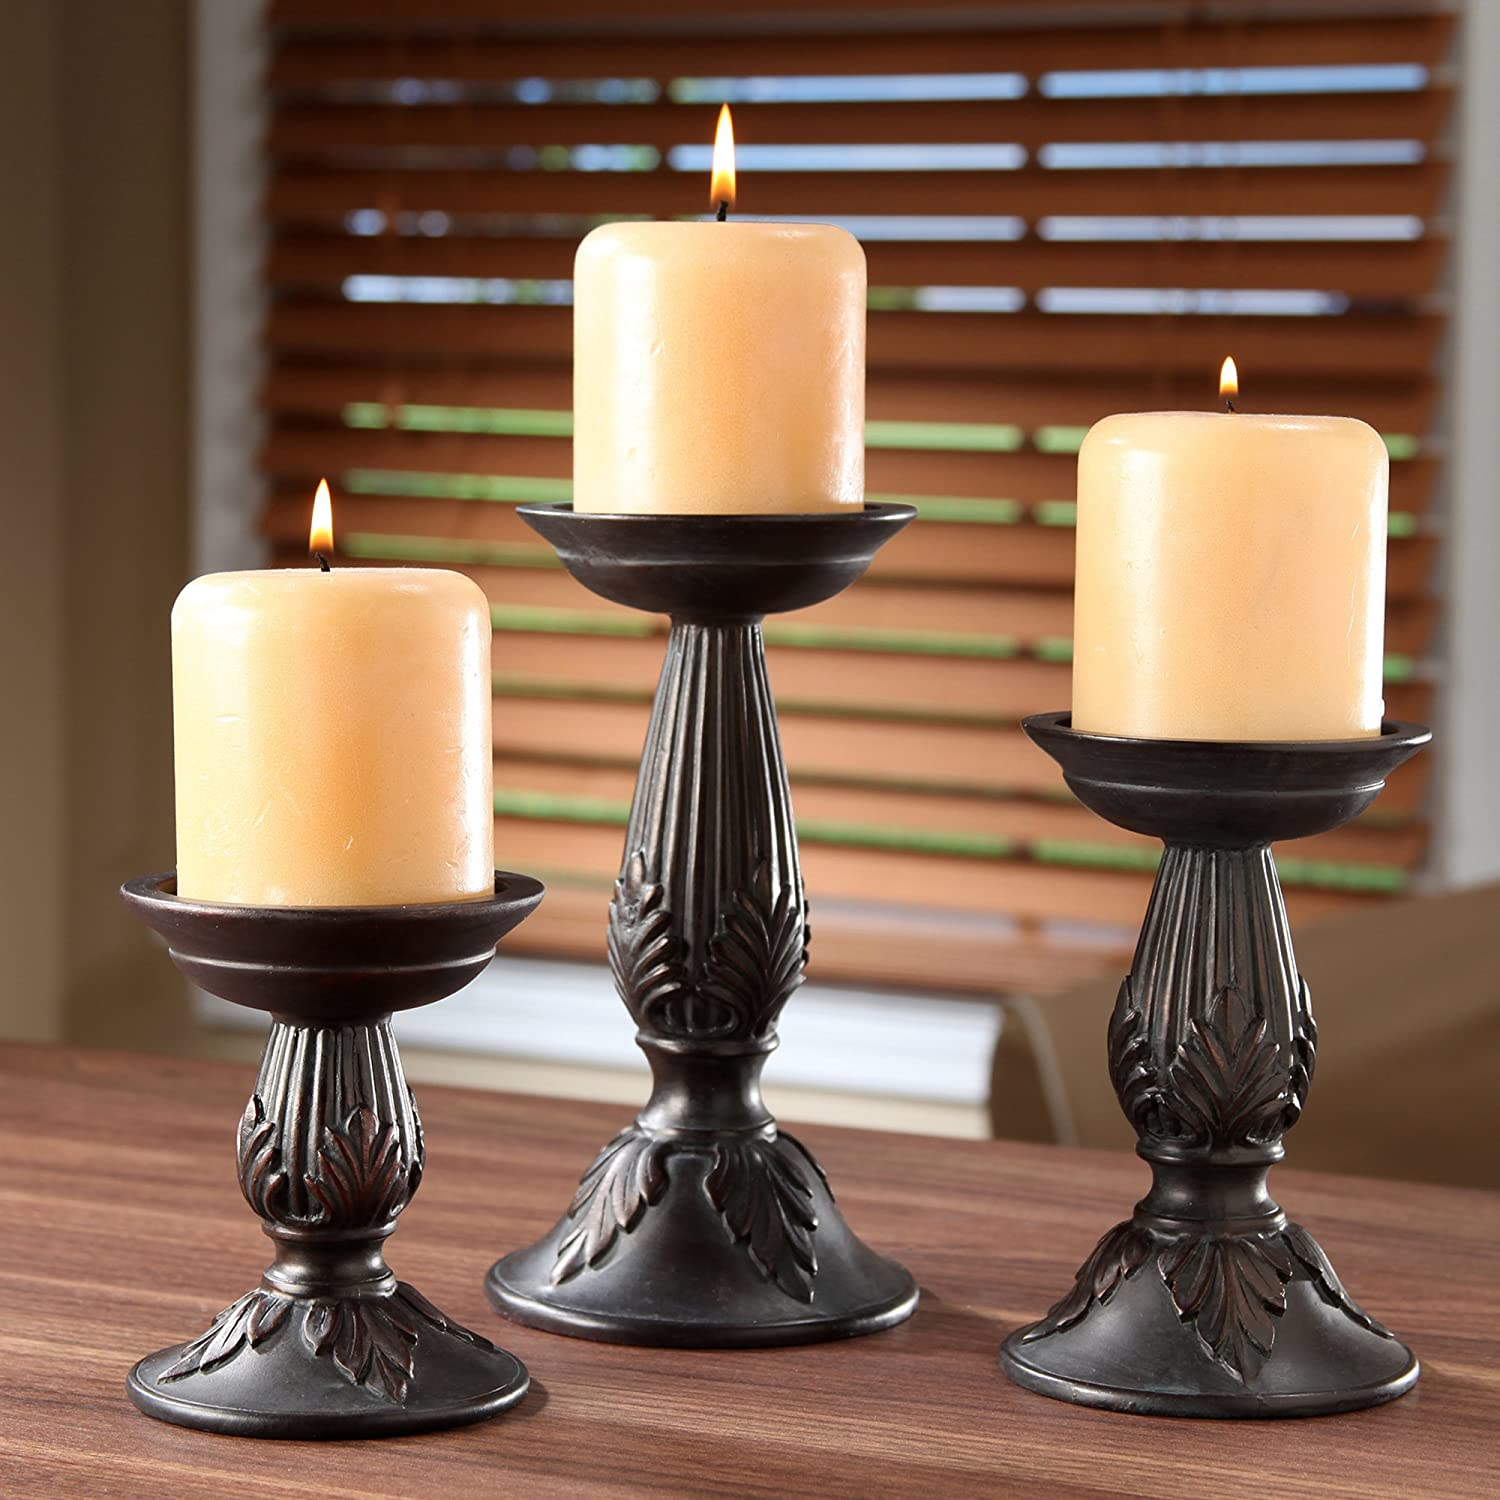 Christmas Tablescape Décor - Dark Brown Antique Style Resin Pillar Candle Holders Set of 3